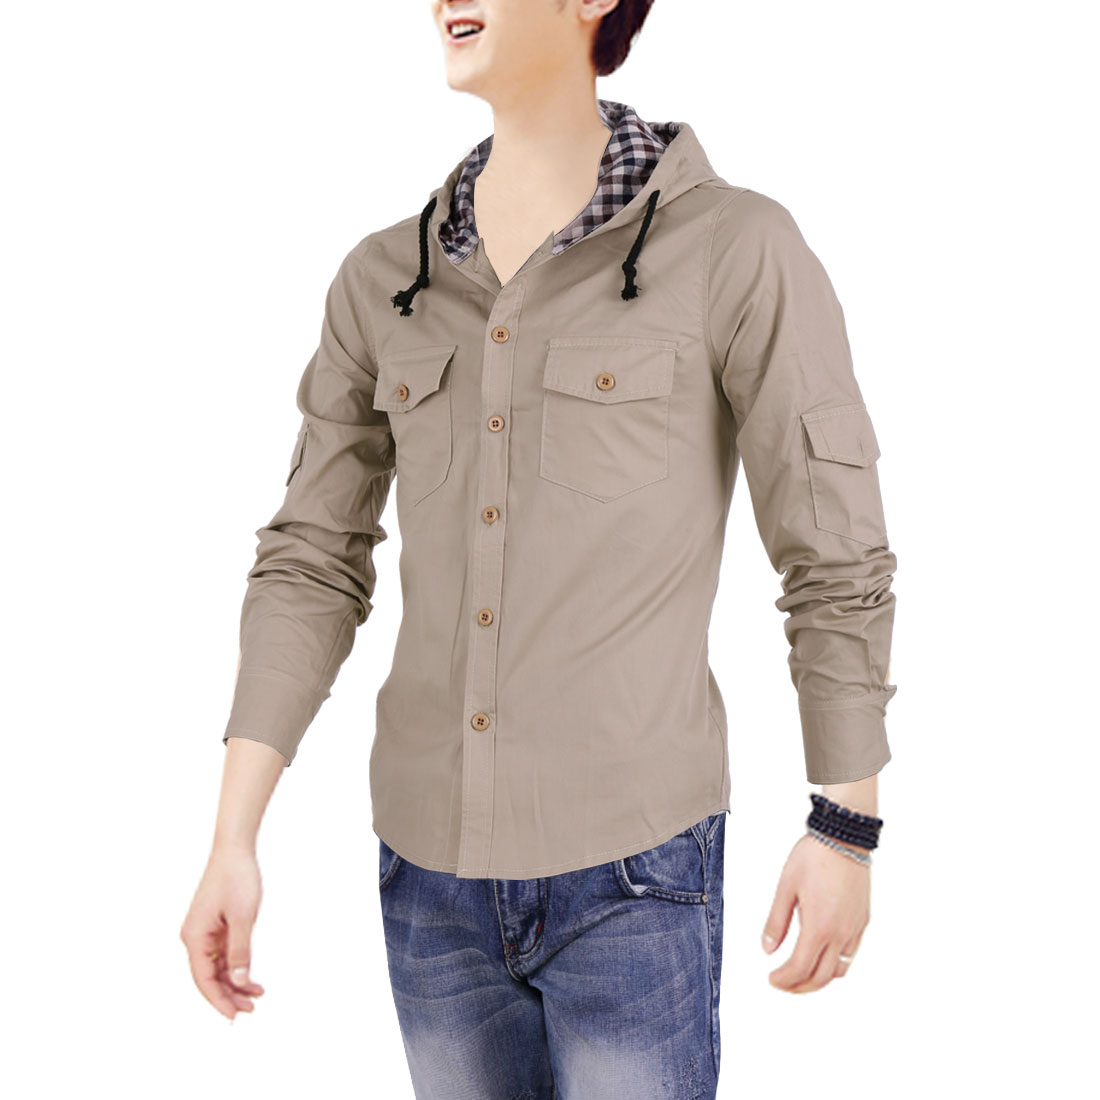 Men Adjustable Strap Button Up Pockets Khaki Hoodie M